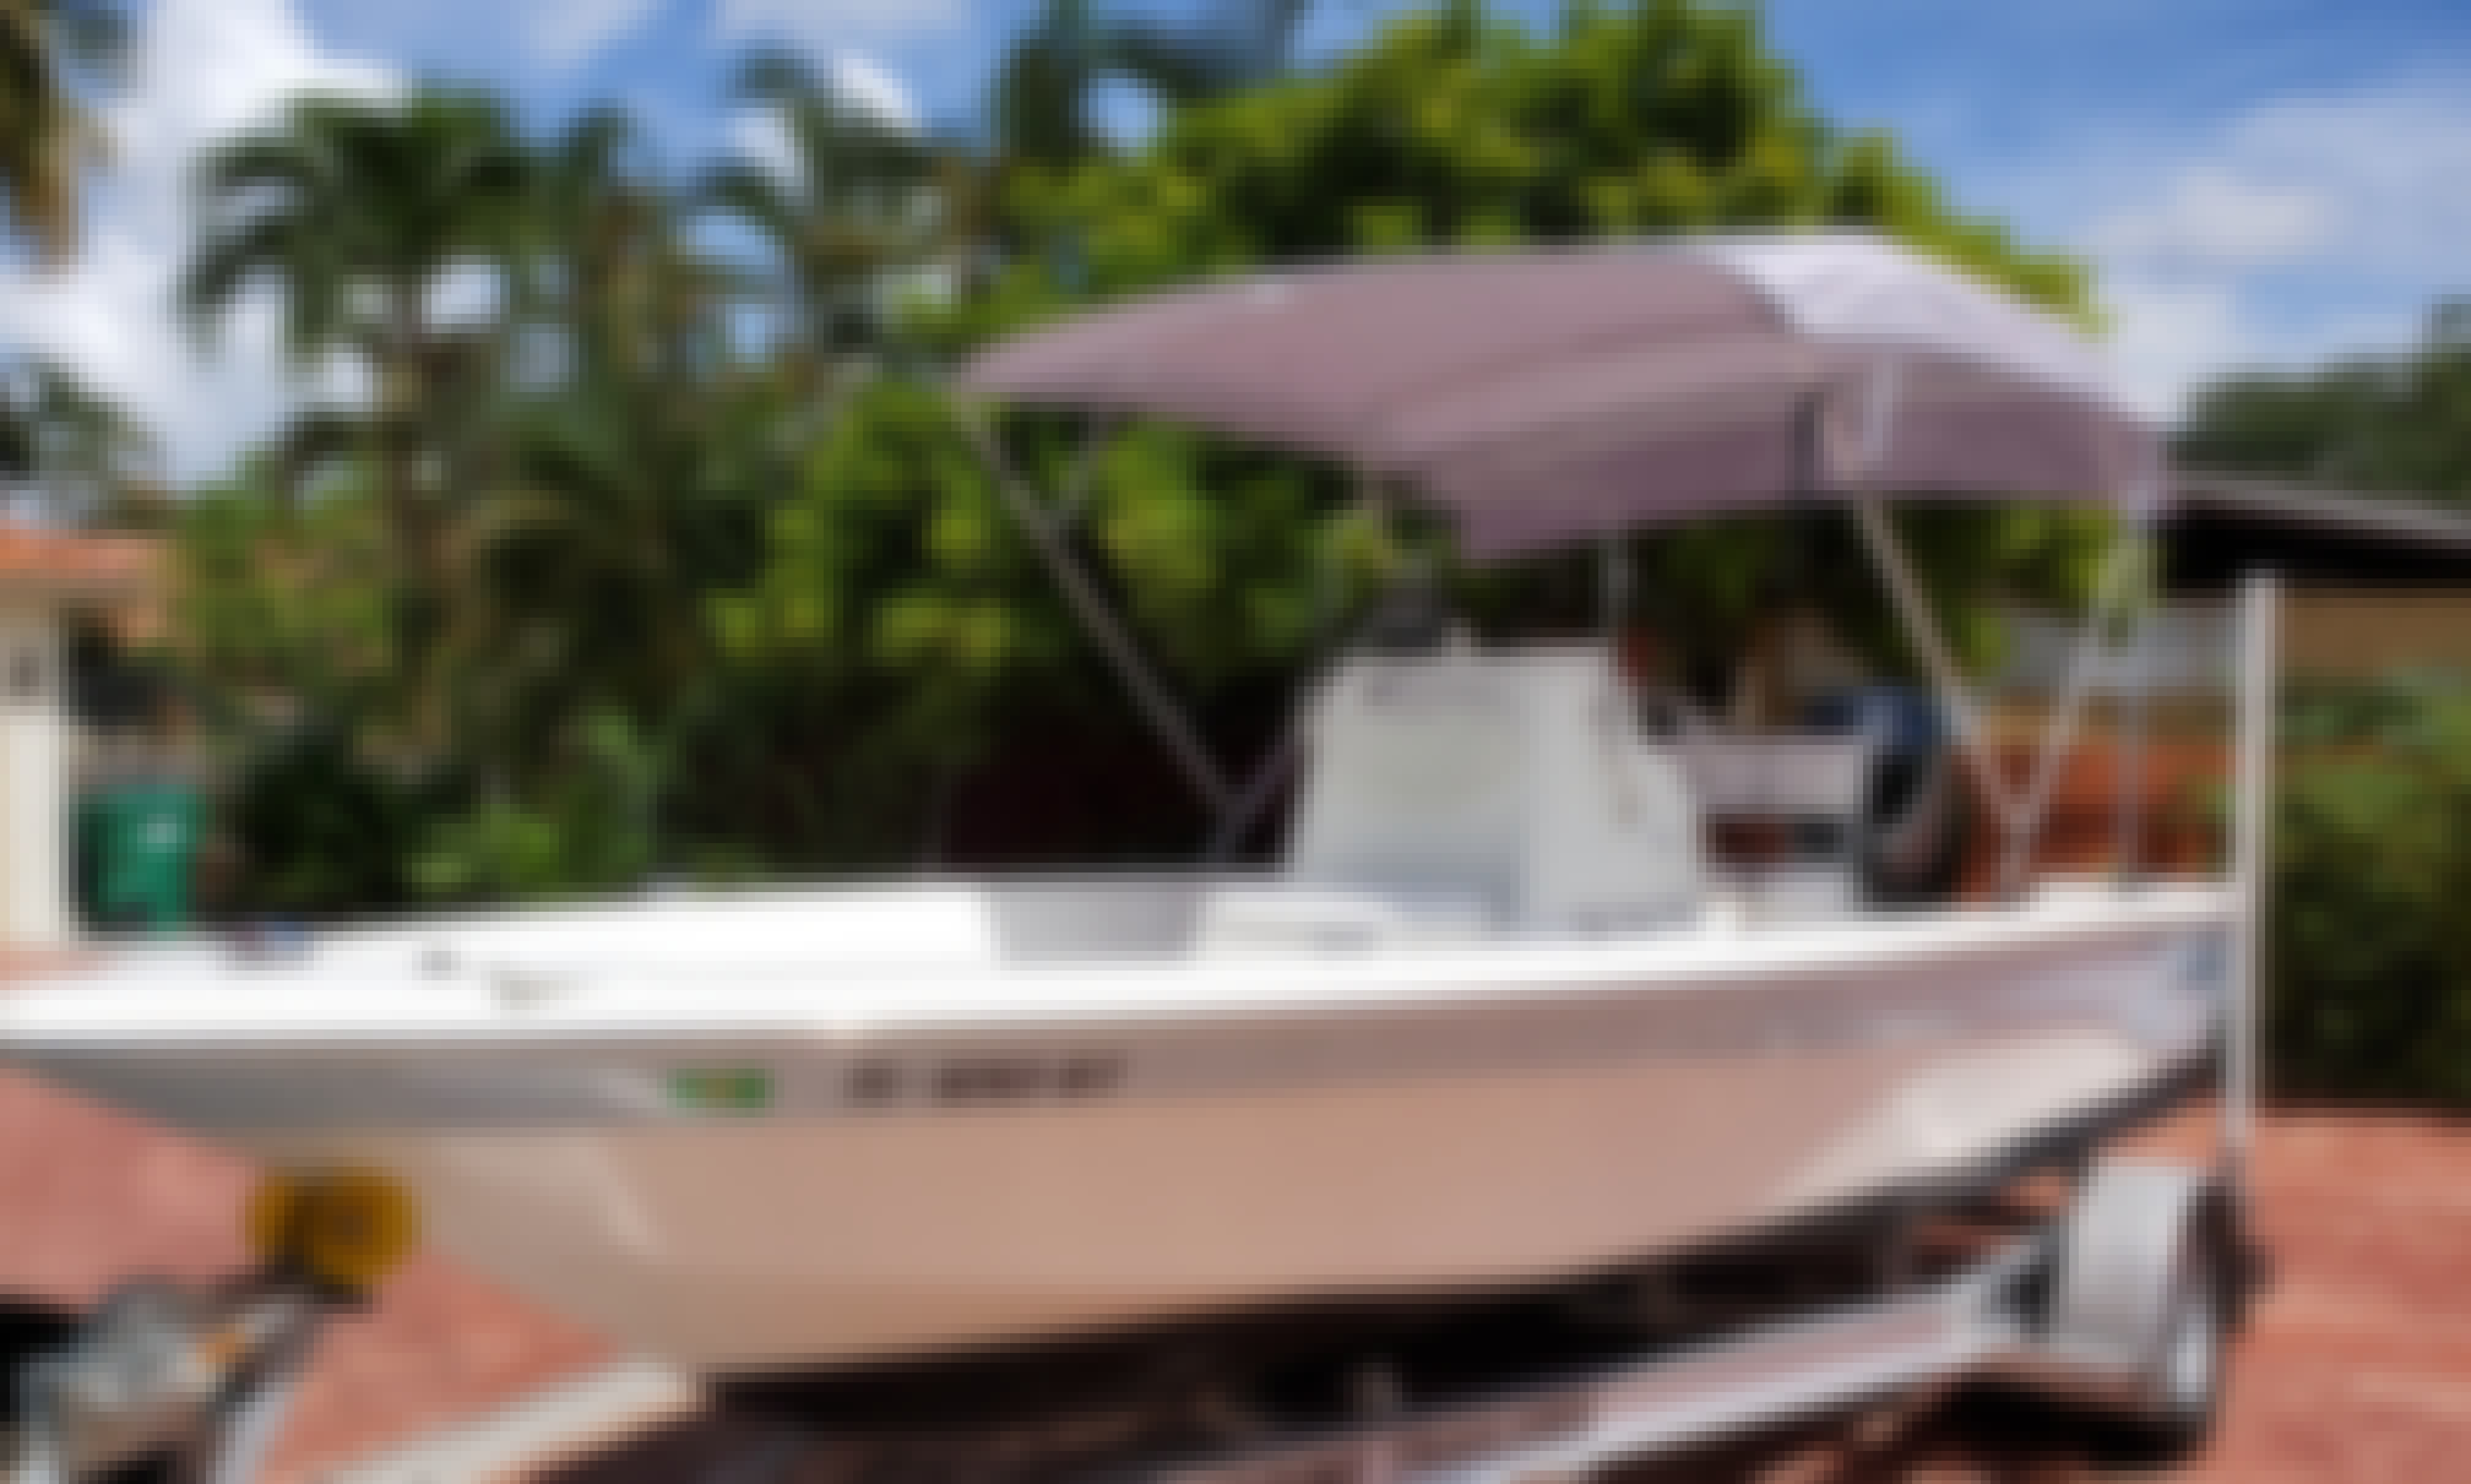 Reserve the NauticStar NuaticBay 1800 Bayboat in Hialeah, Florida